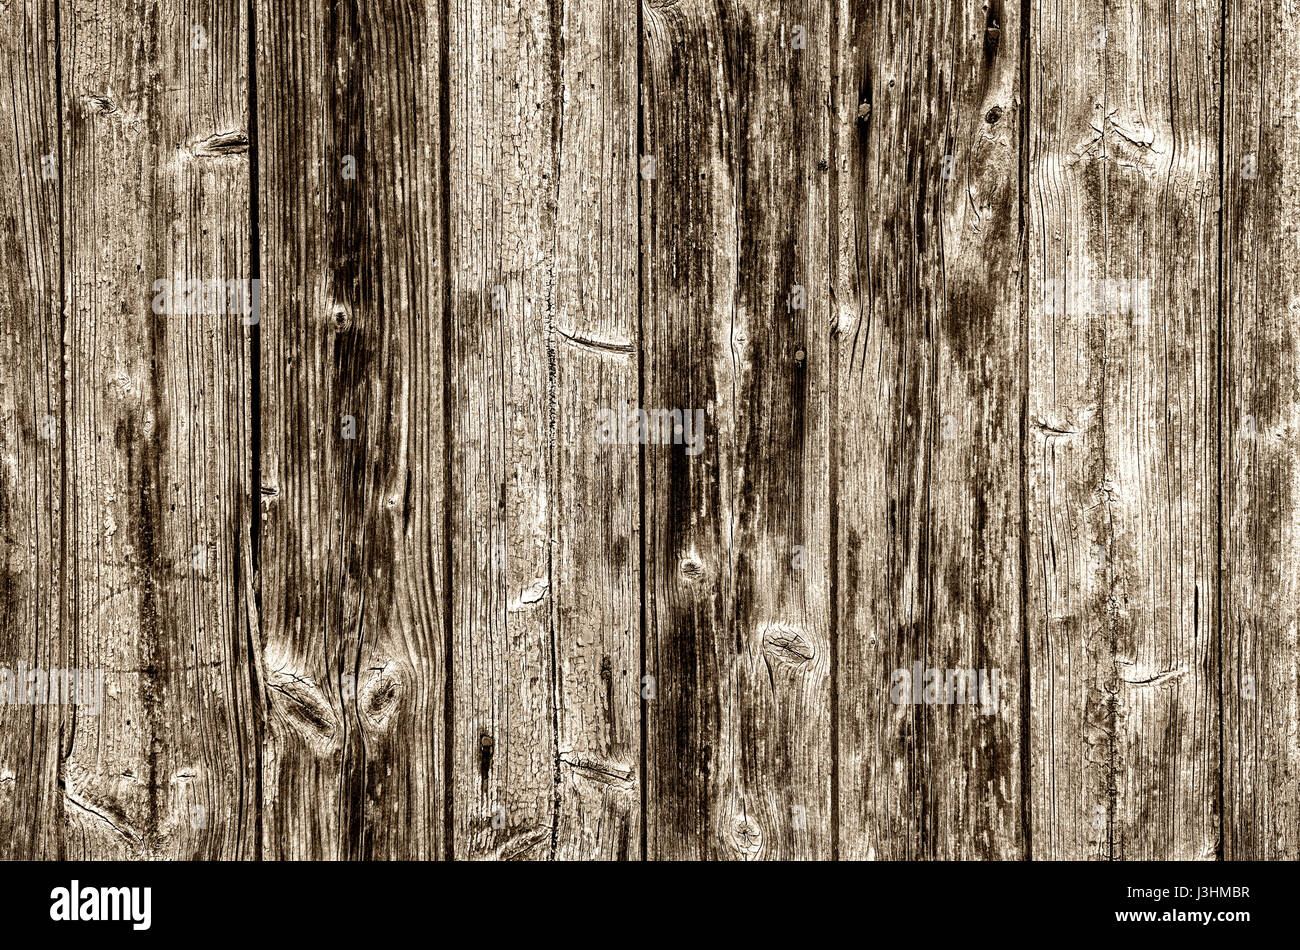 Old wood planks, background - Stock Image